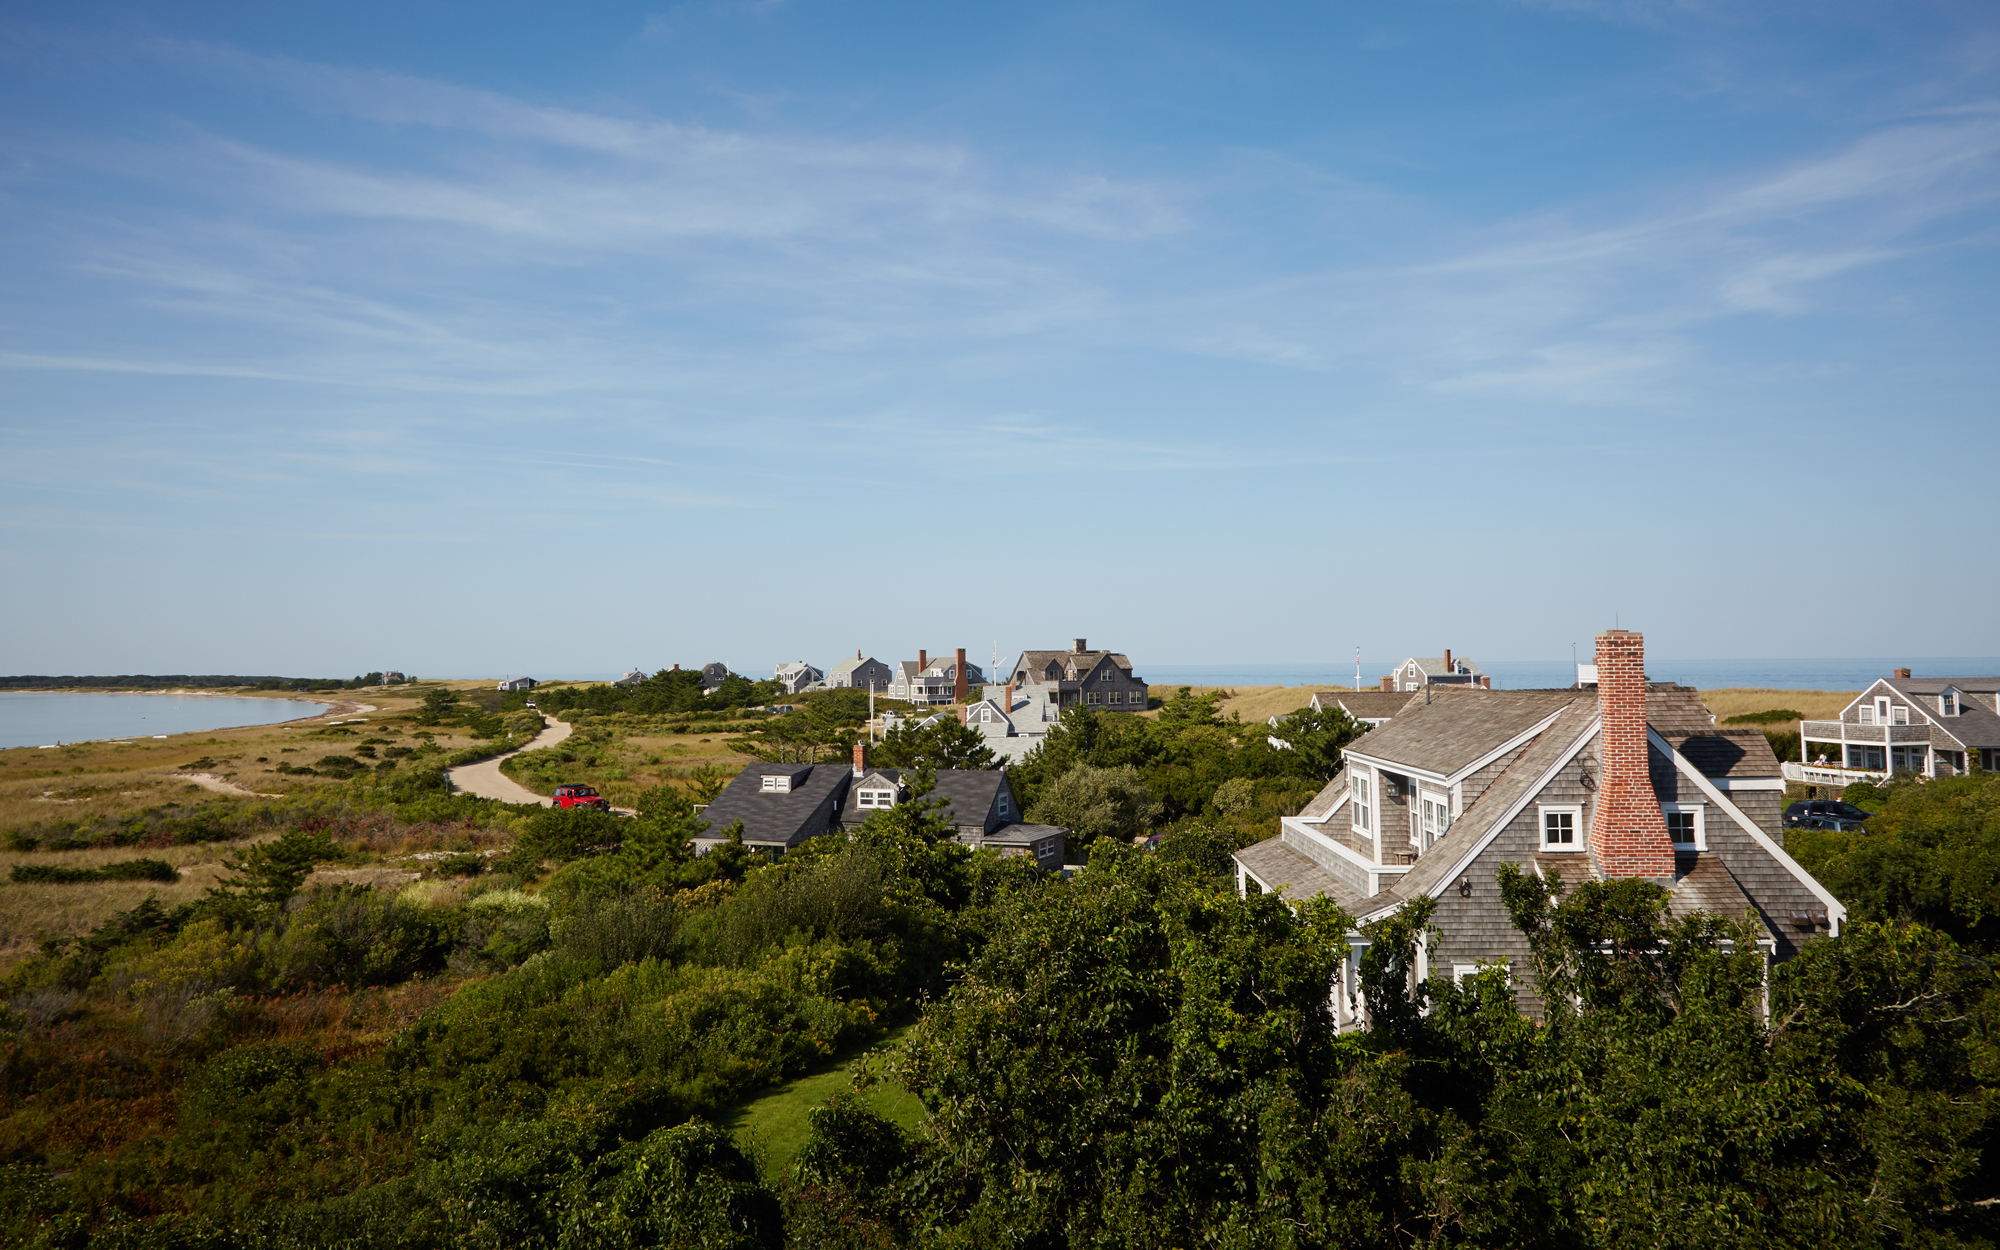 Summer Travel in Nantucket